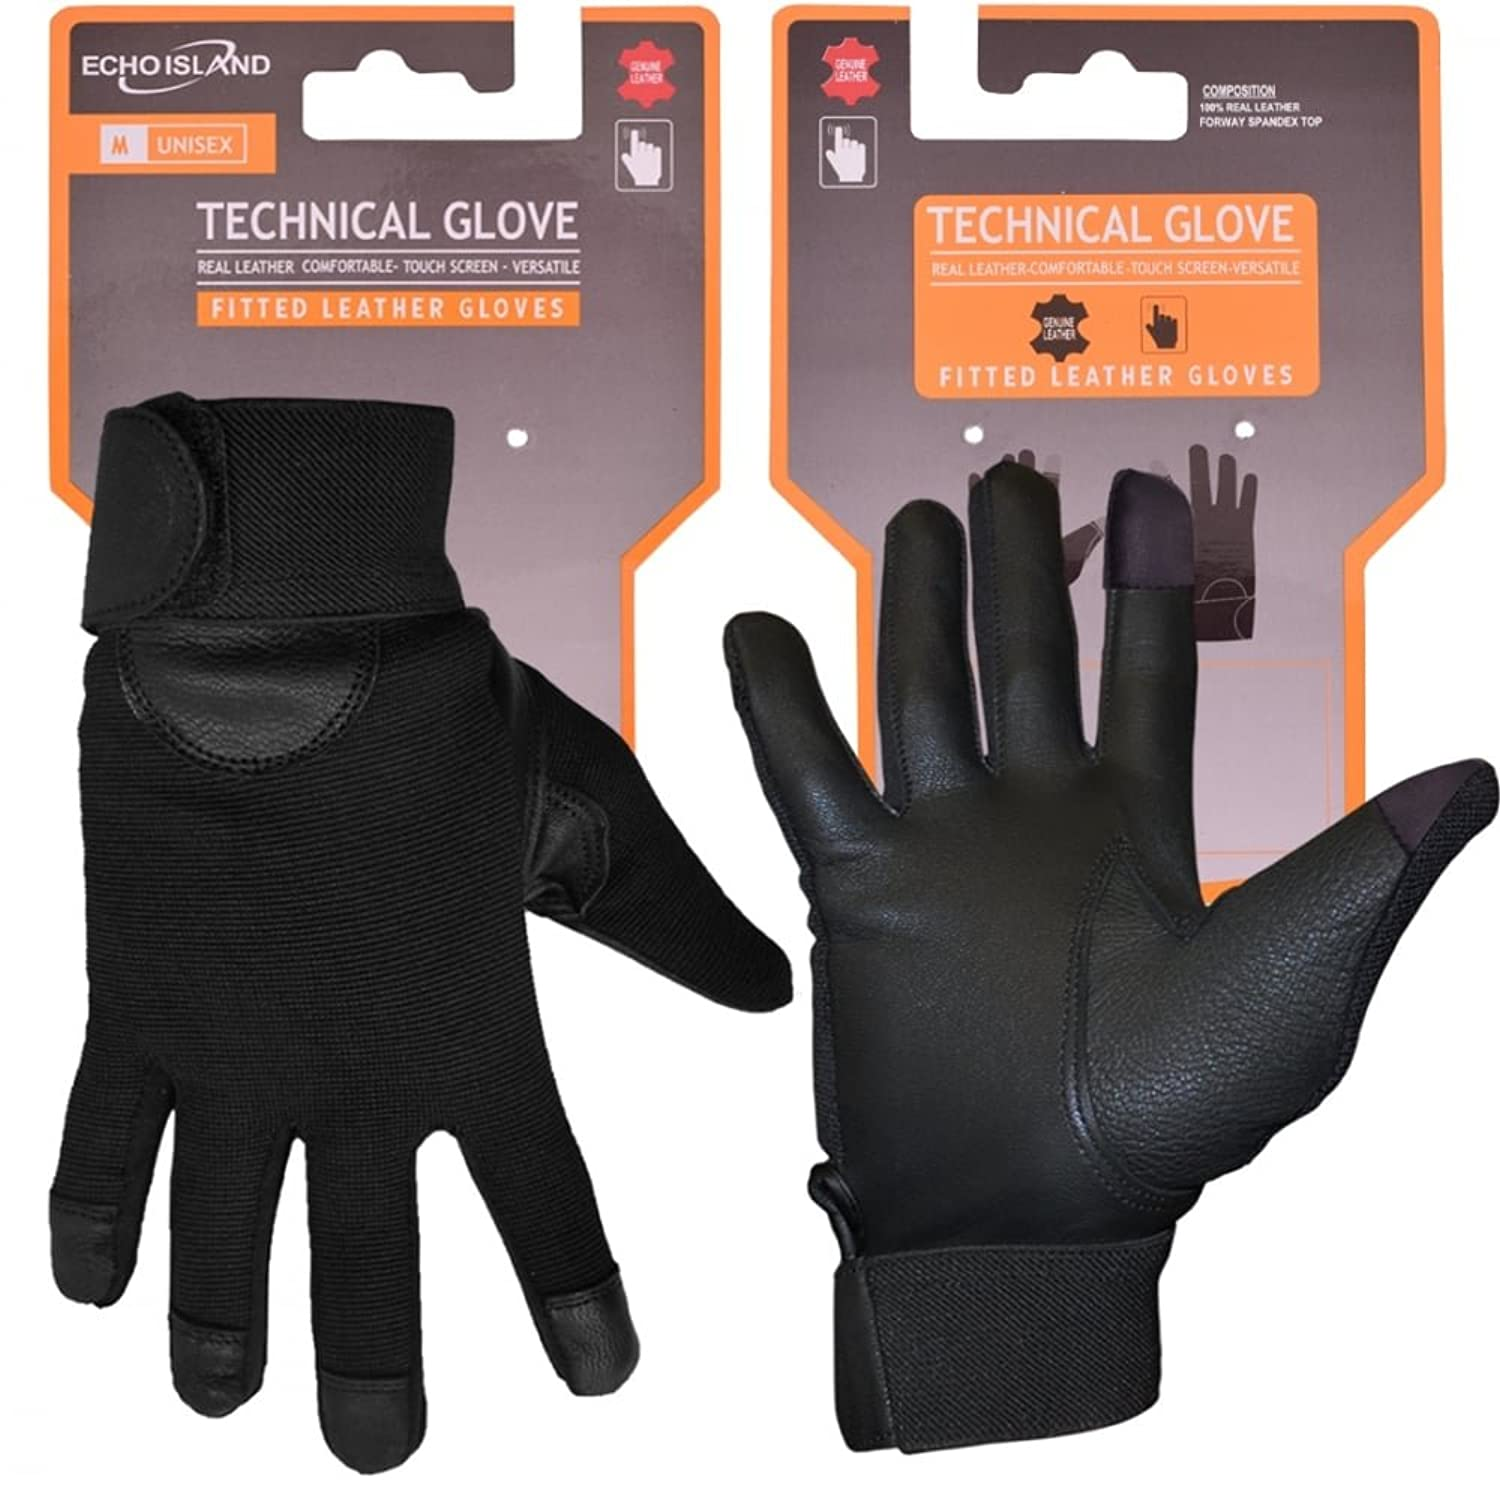 Mens leather gloves amazon uk - Mens And Womens Fitted Real Leather Gloves With Spandex Velcro Fastened Driving